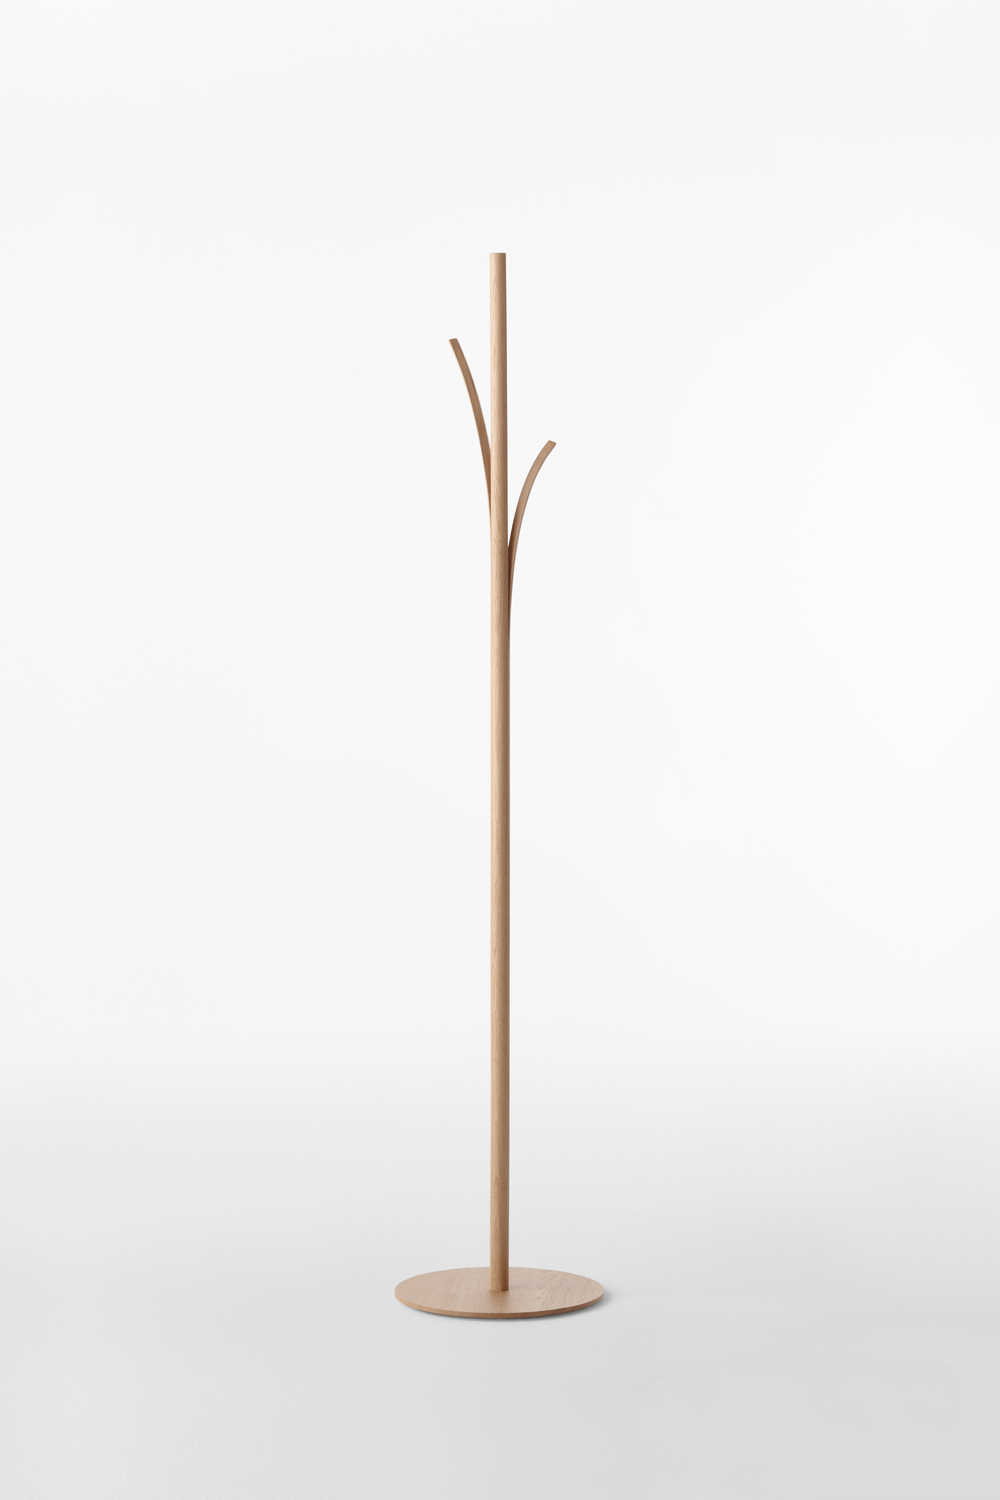 Nendo - Splinter Coat Stand - 1.jpg